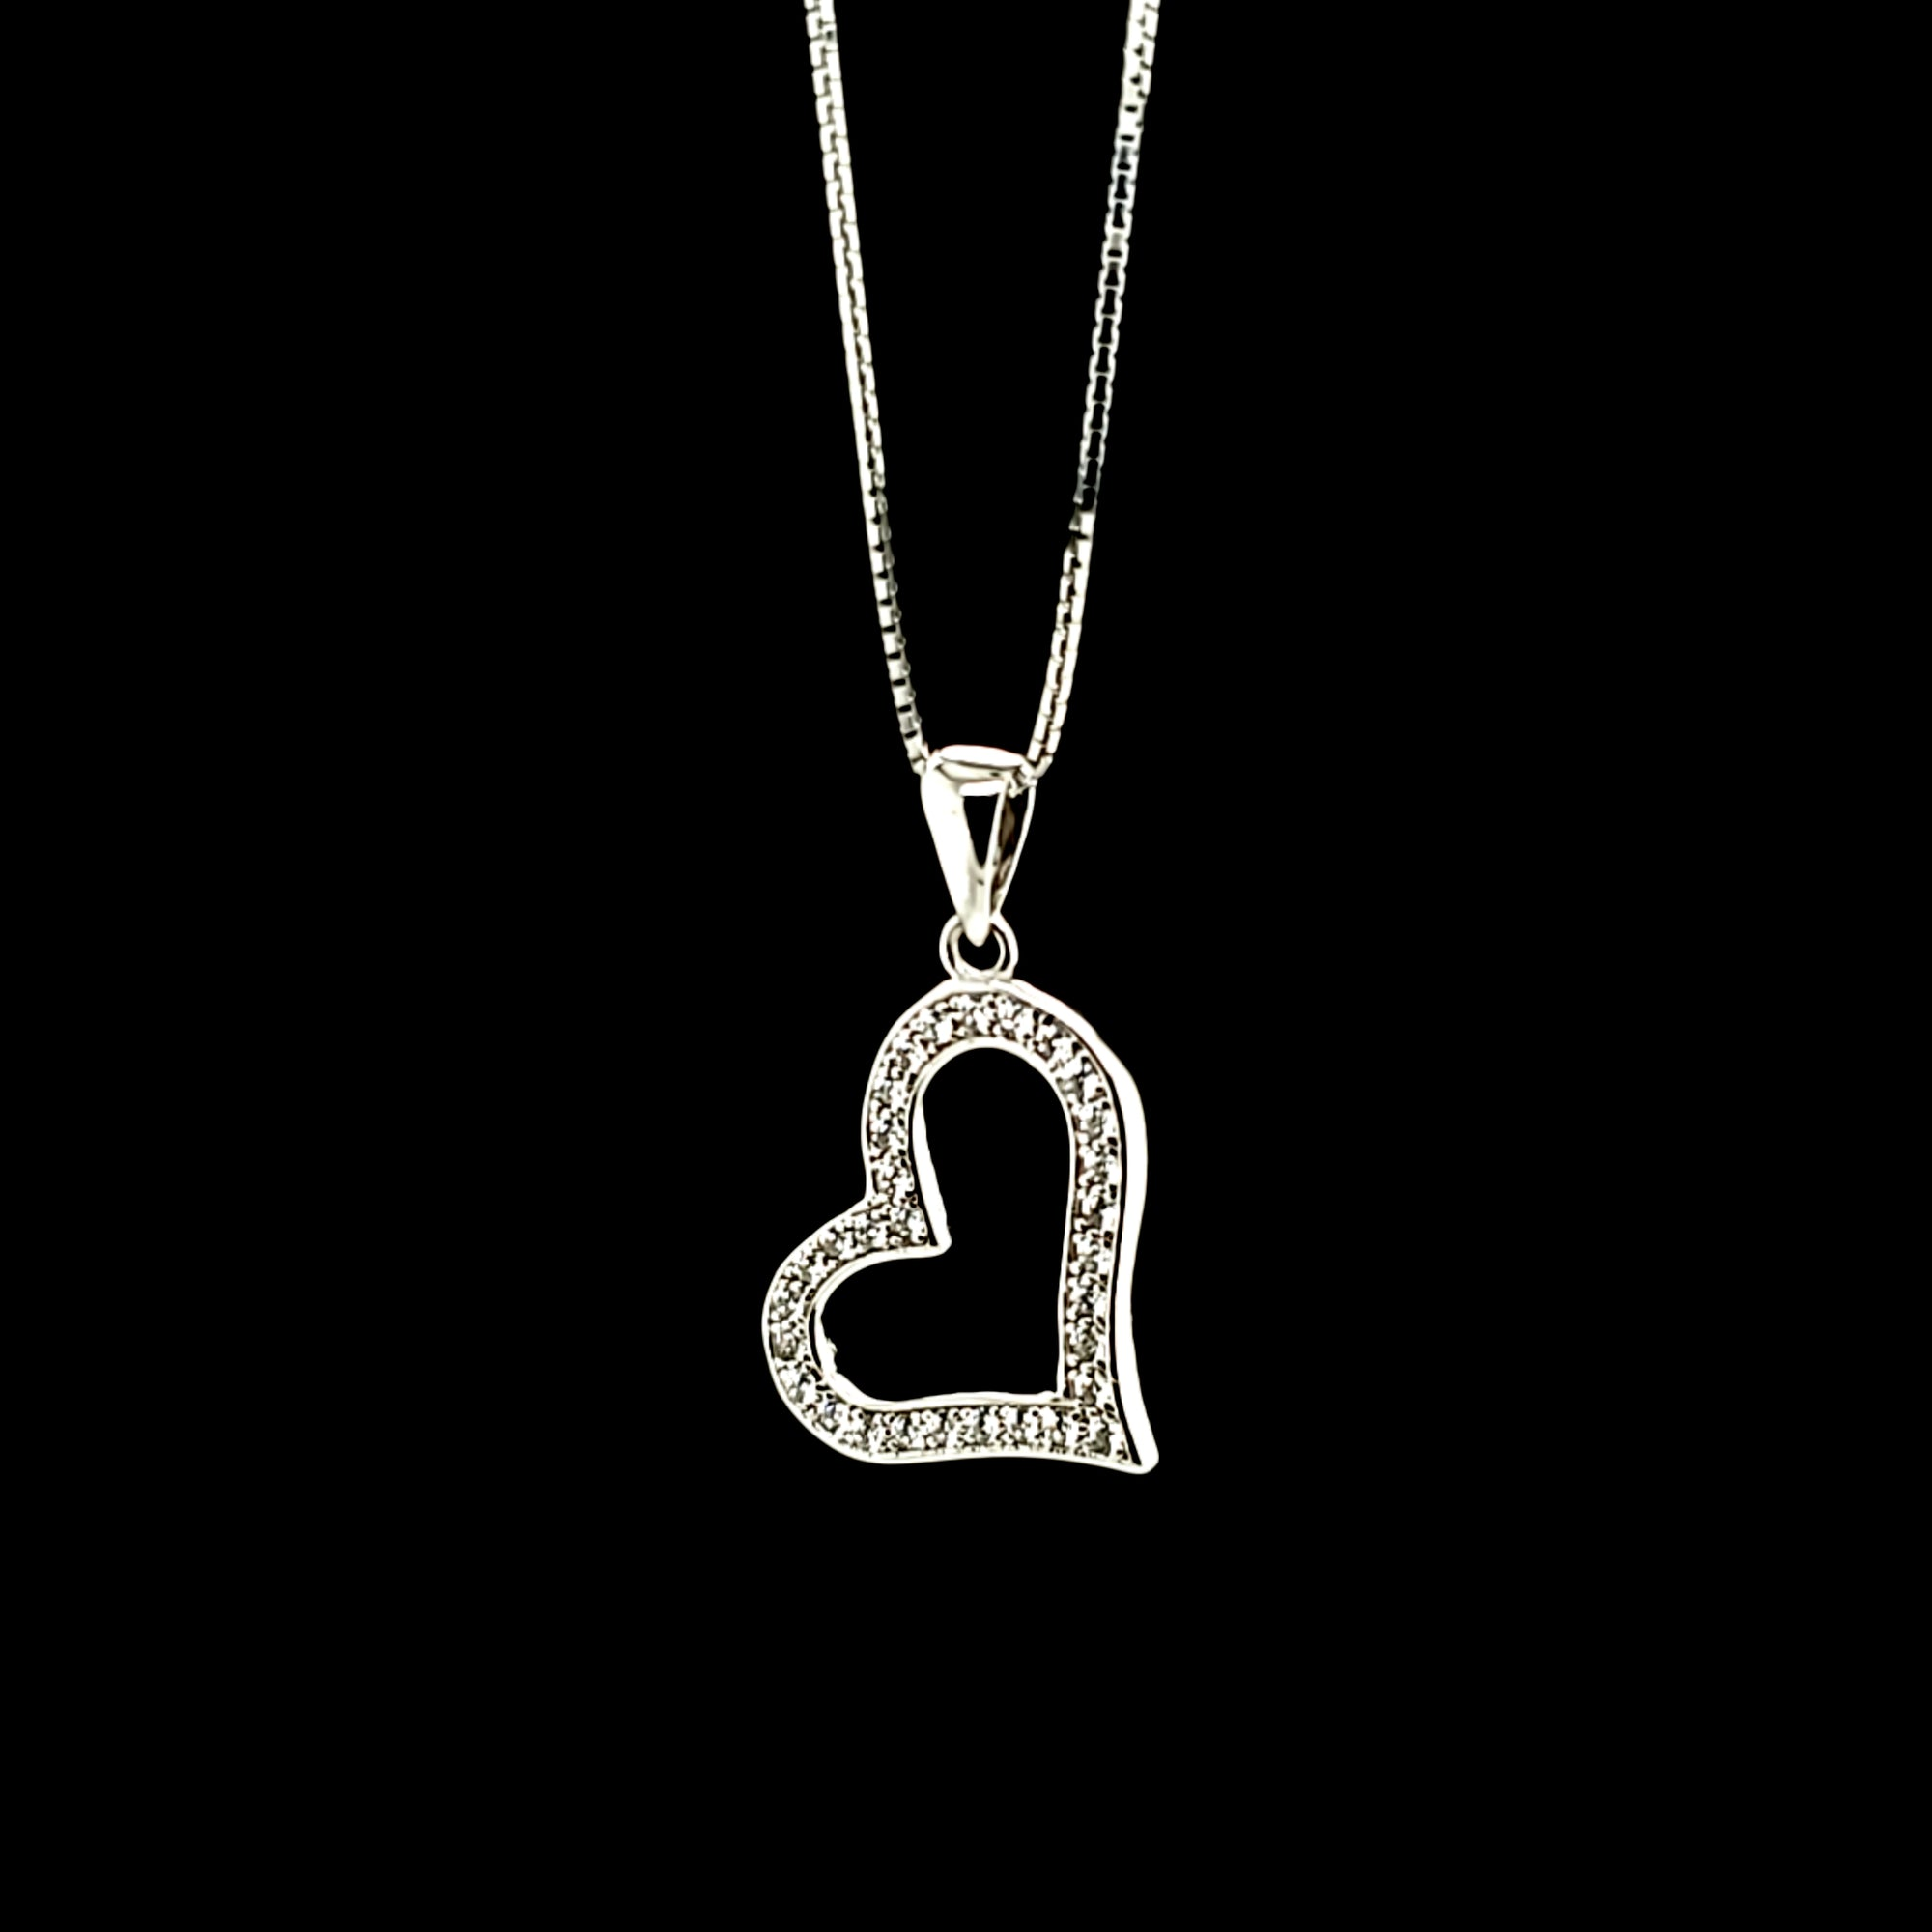 925 Sterling Silver (Made in Italy) Box Chain 18'' with Heart CZ Charm